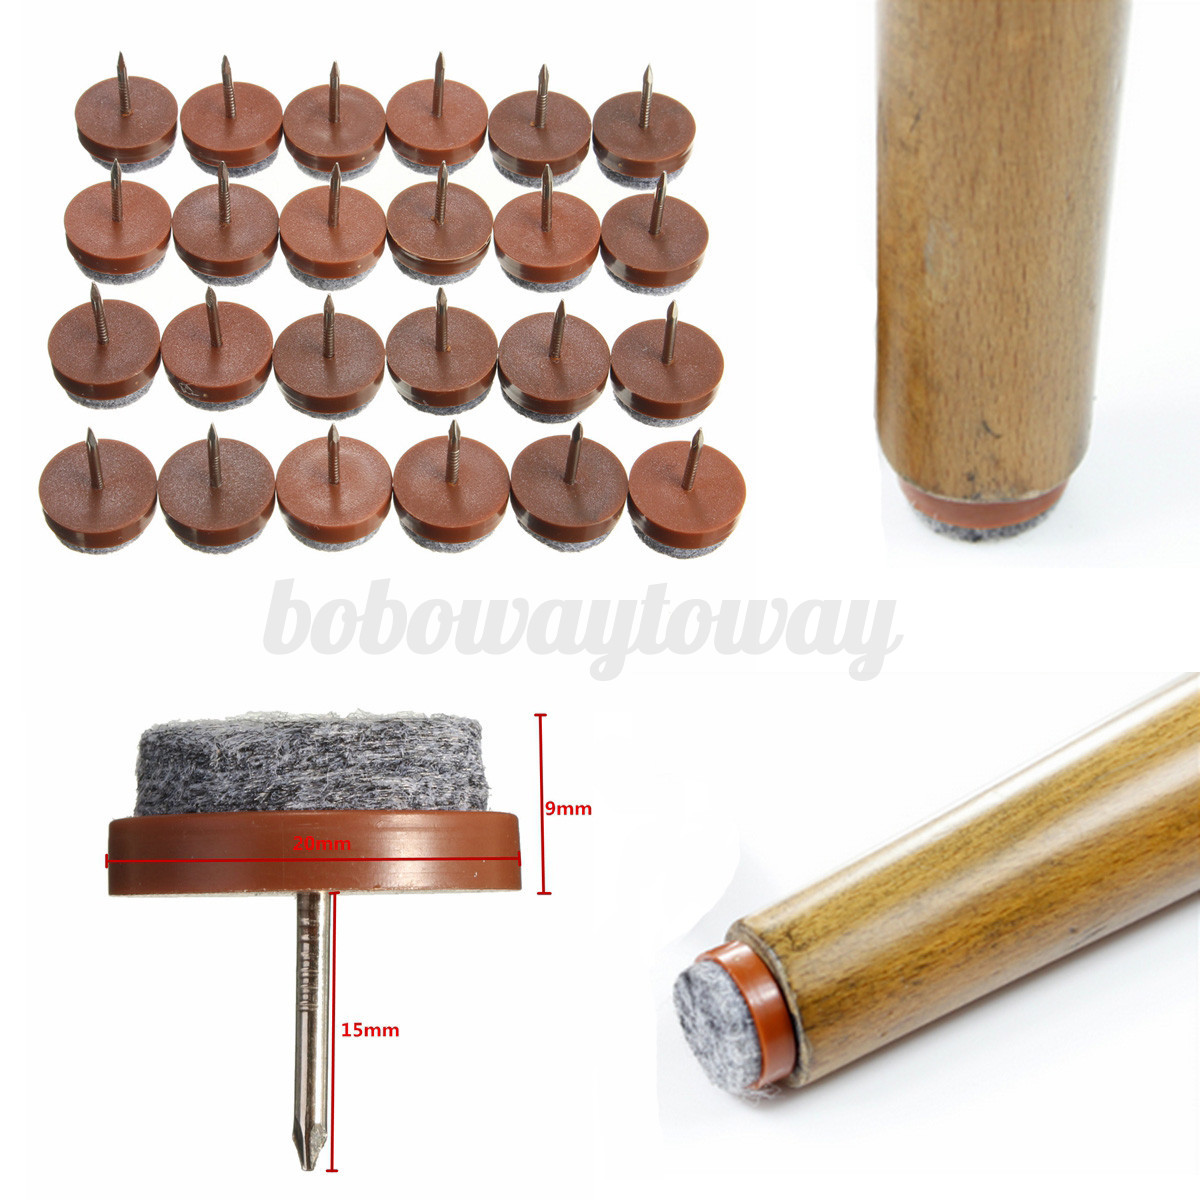 chair leg glides for wood floors camping chairs costco 24pcs furniture table floor felt pad skid glide